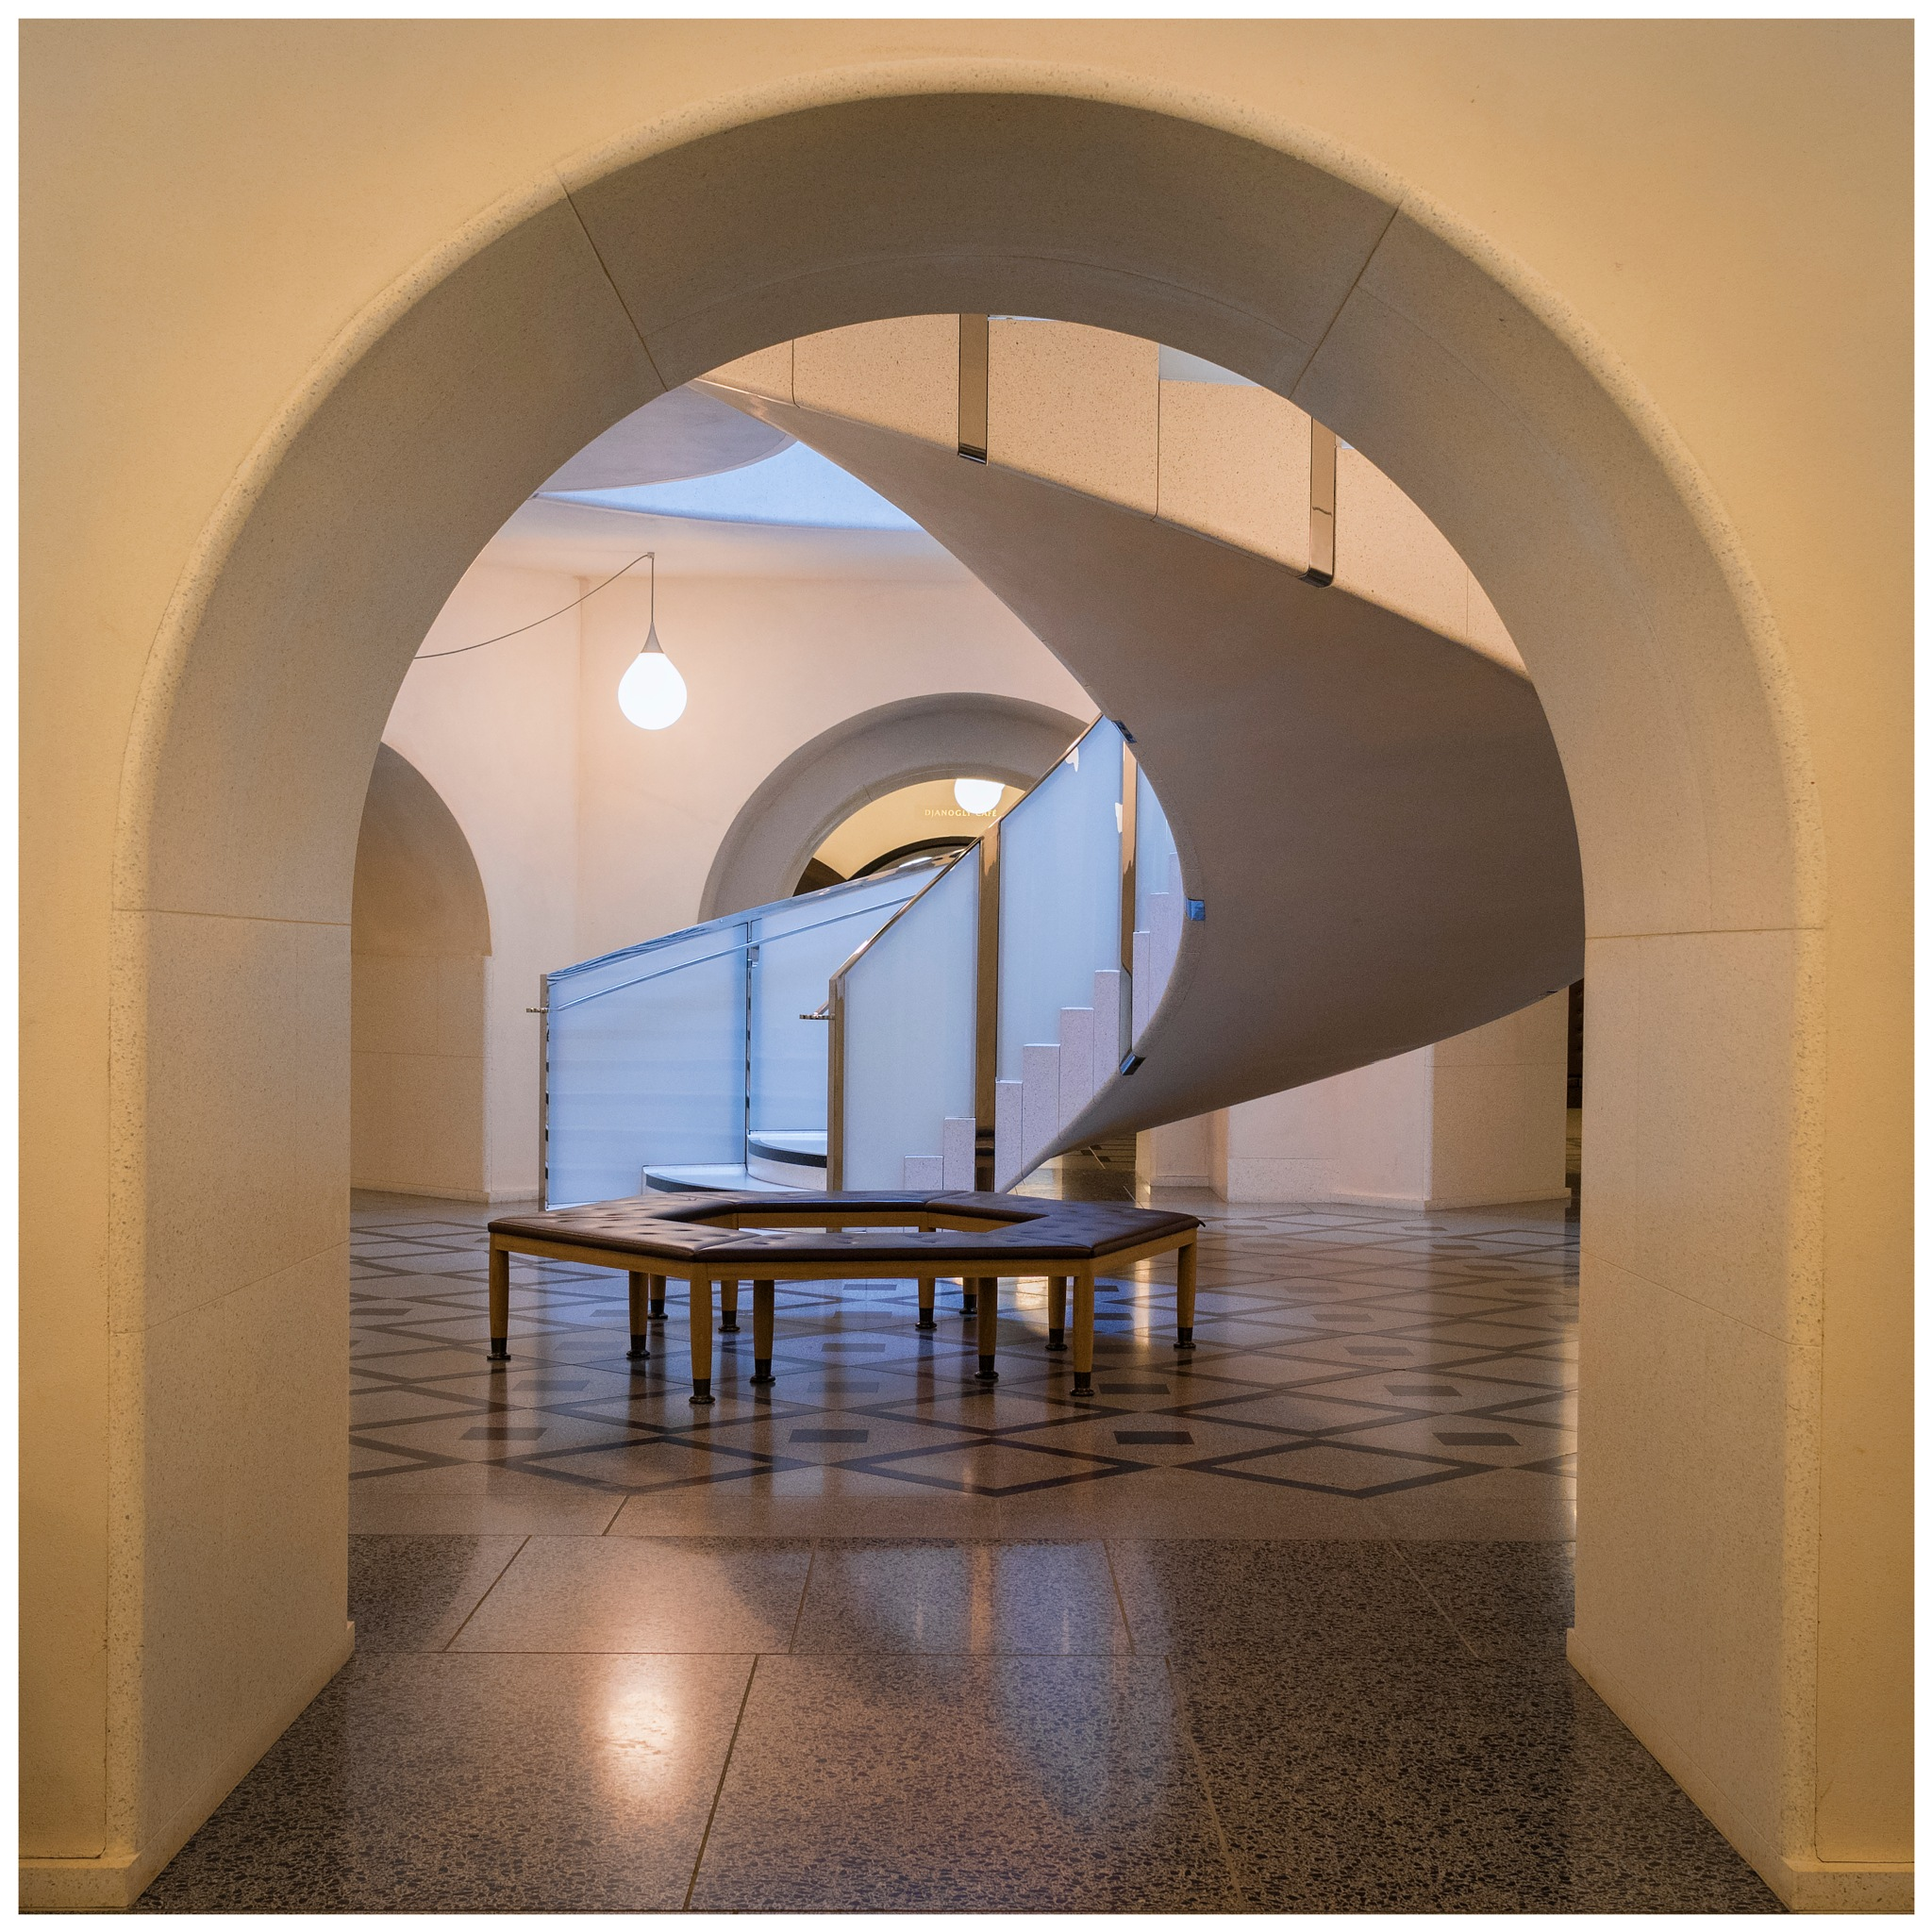 Arch with Stairs by Colin Ritchie